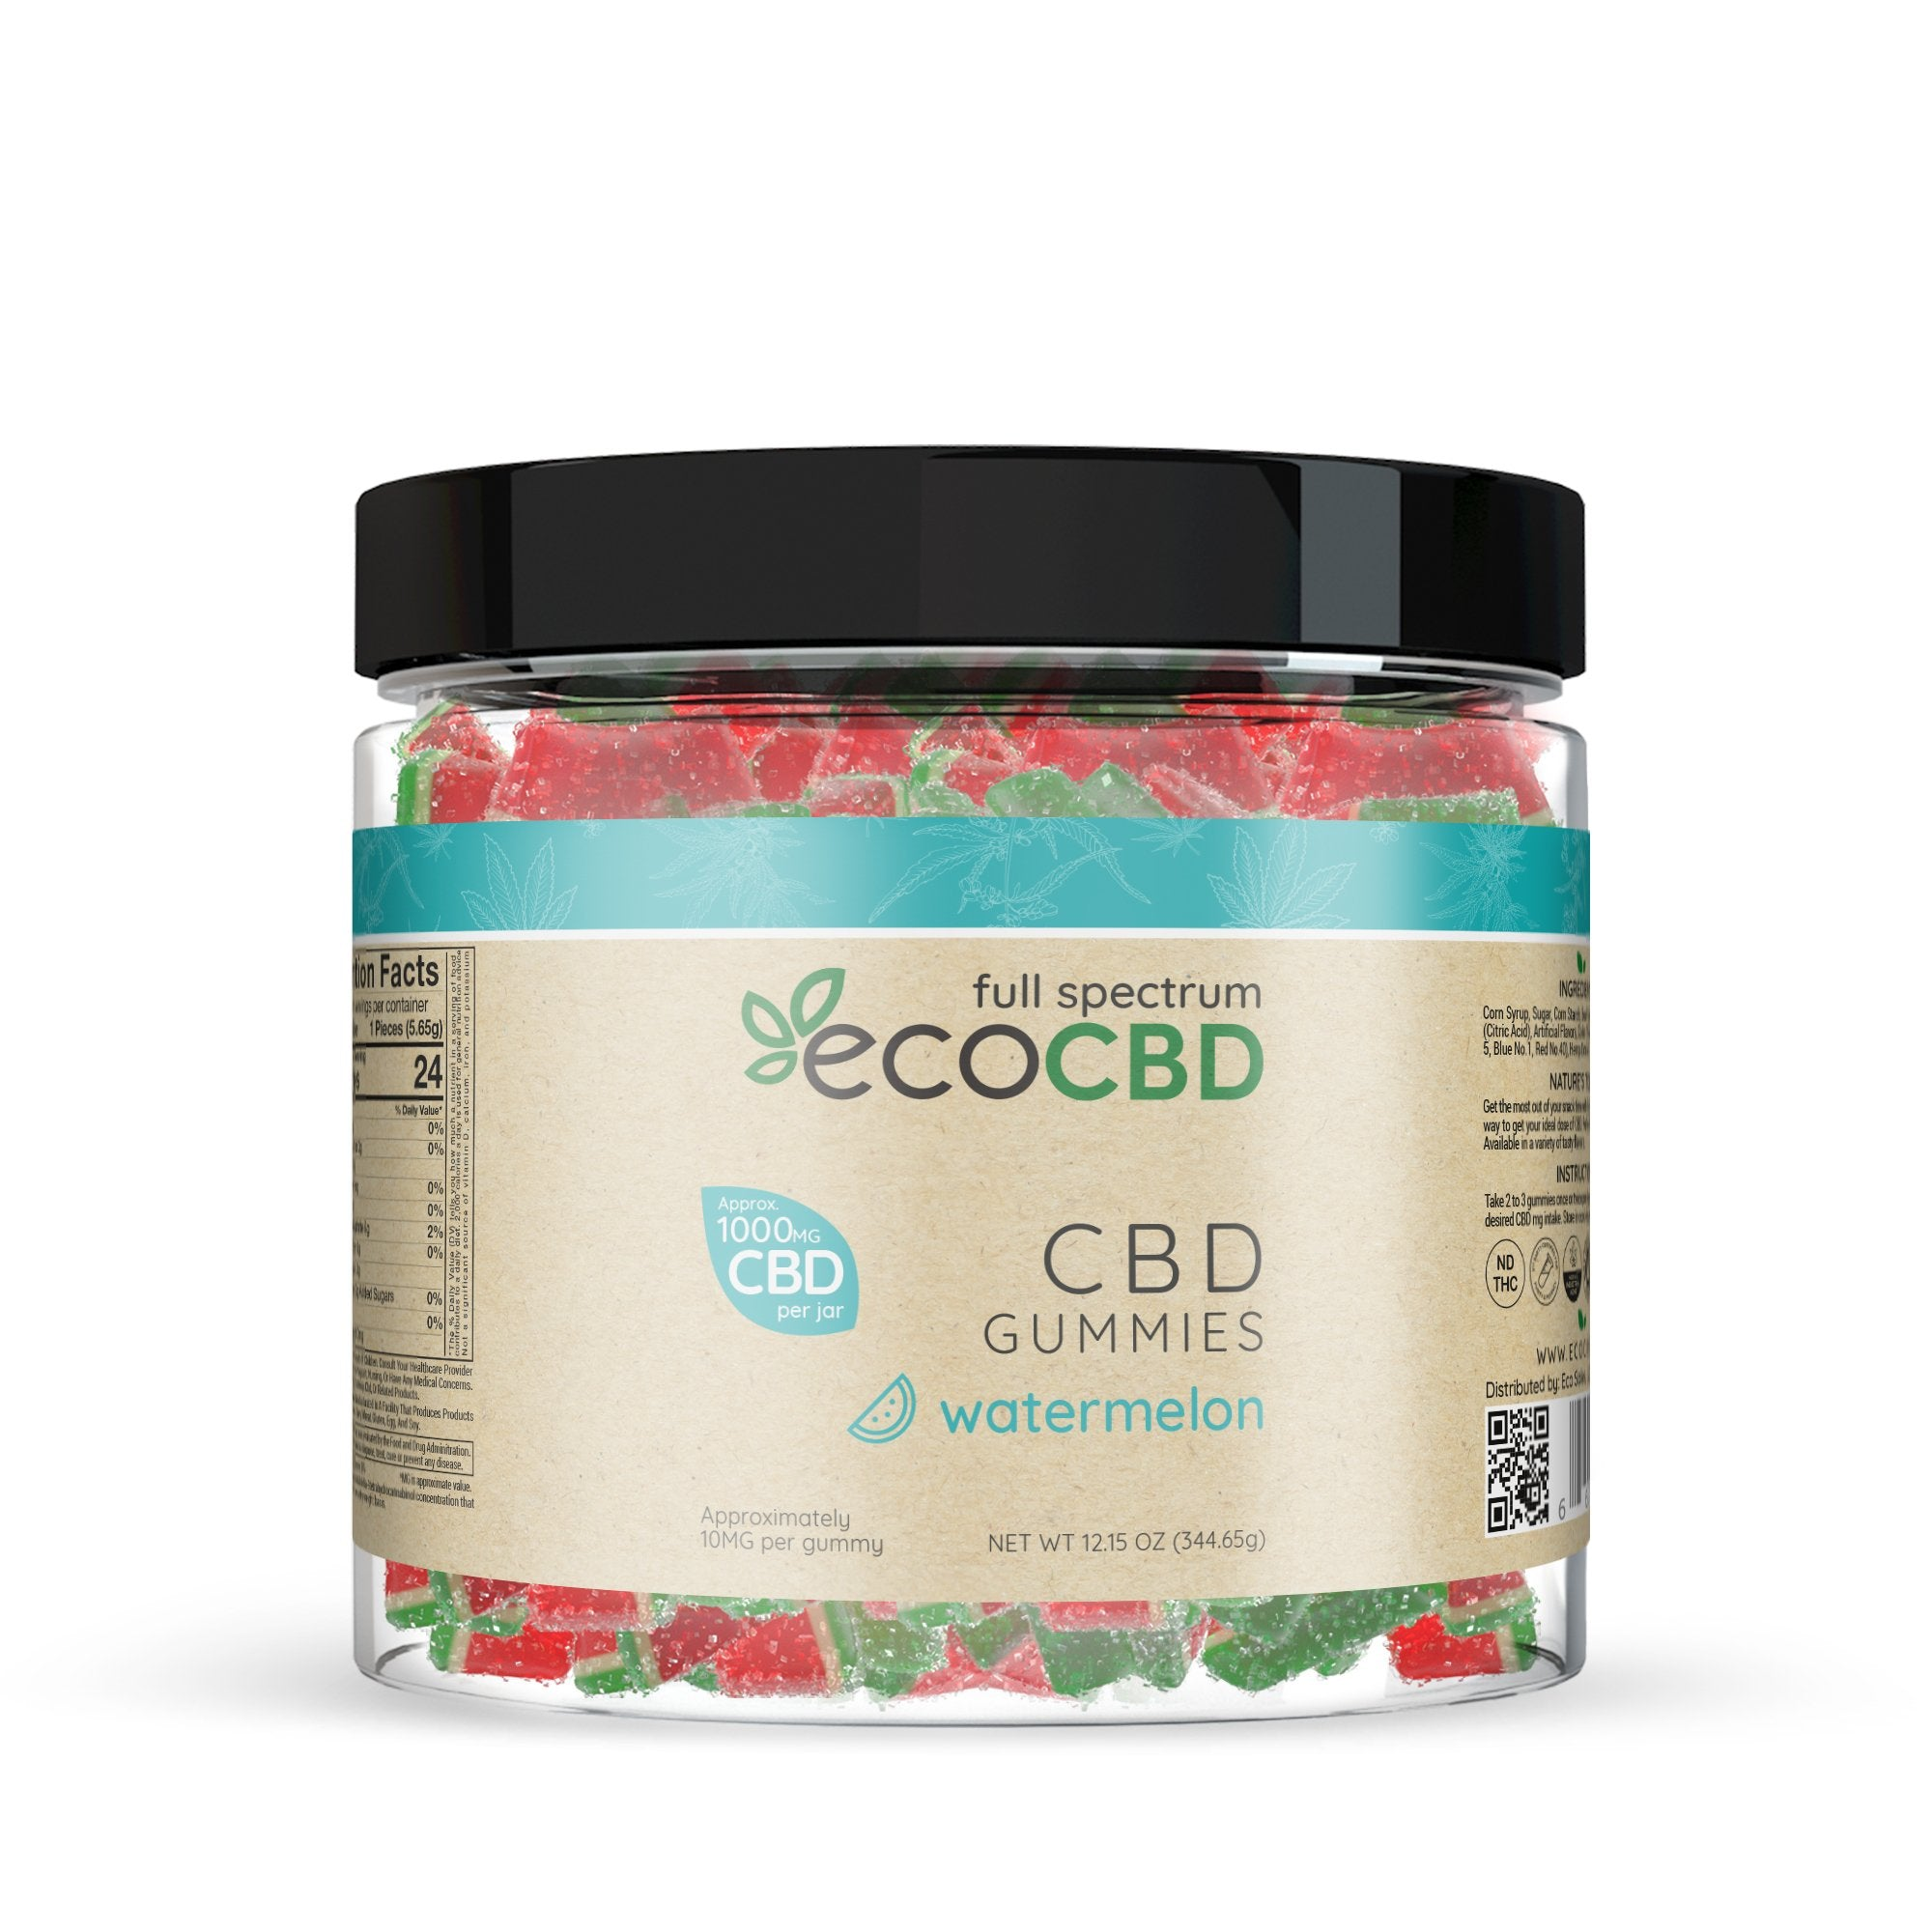 Eco CBD - Full Spectrum CBD Watermelon Slices - 1000mg